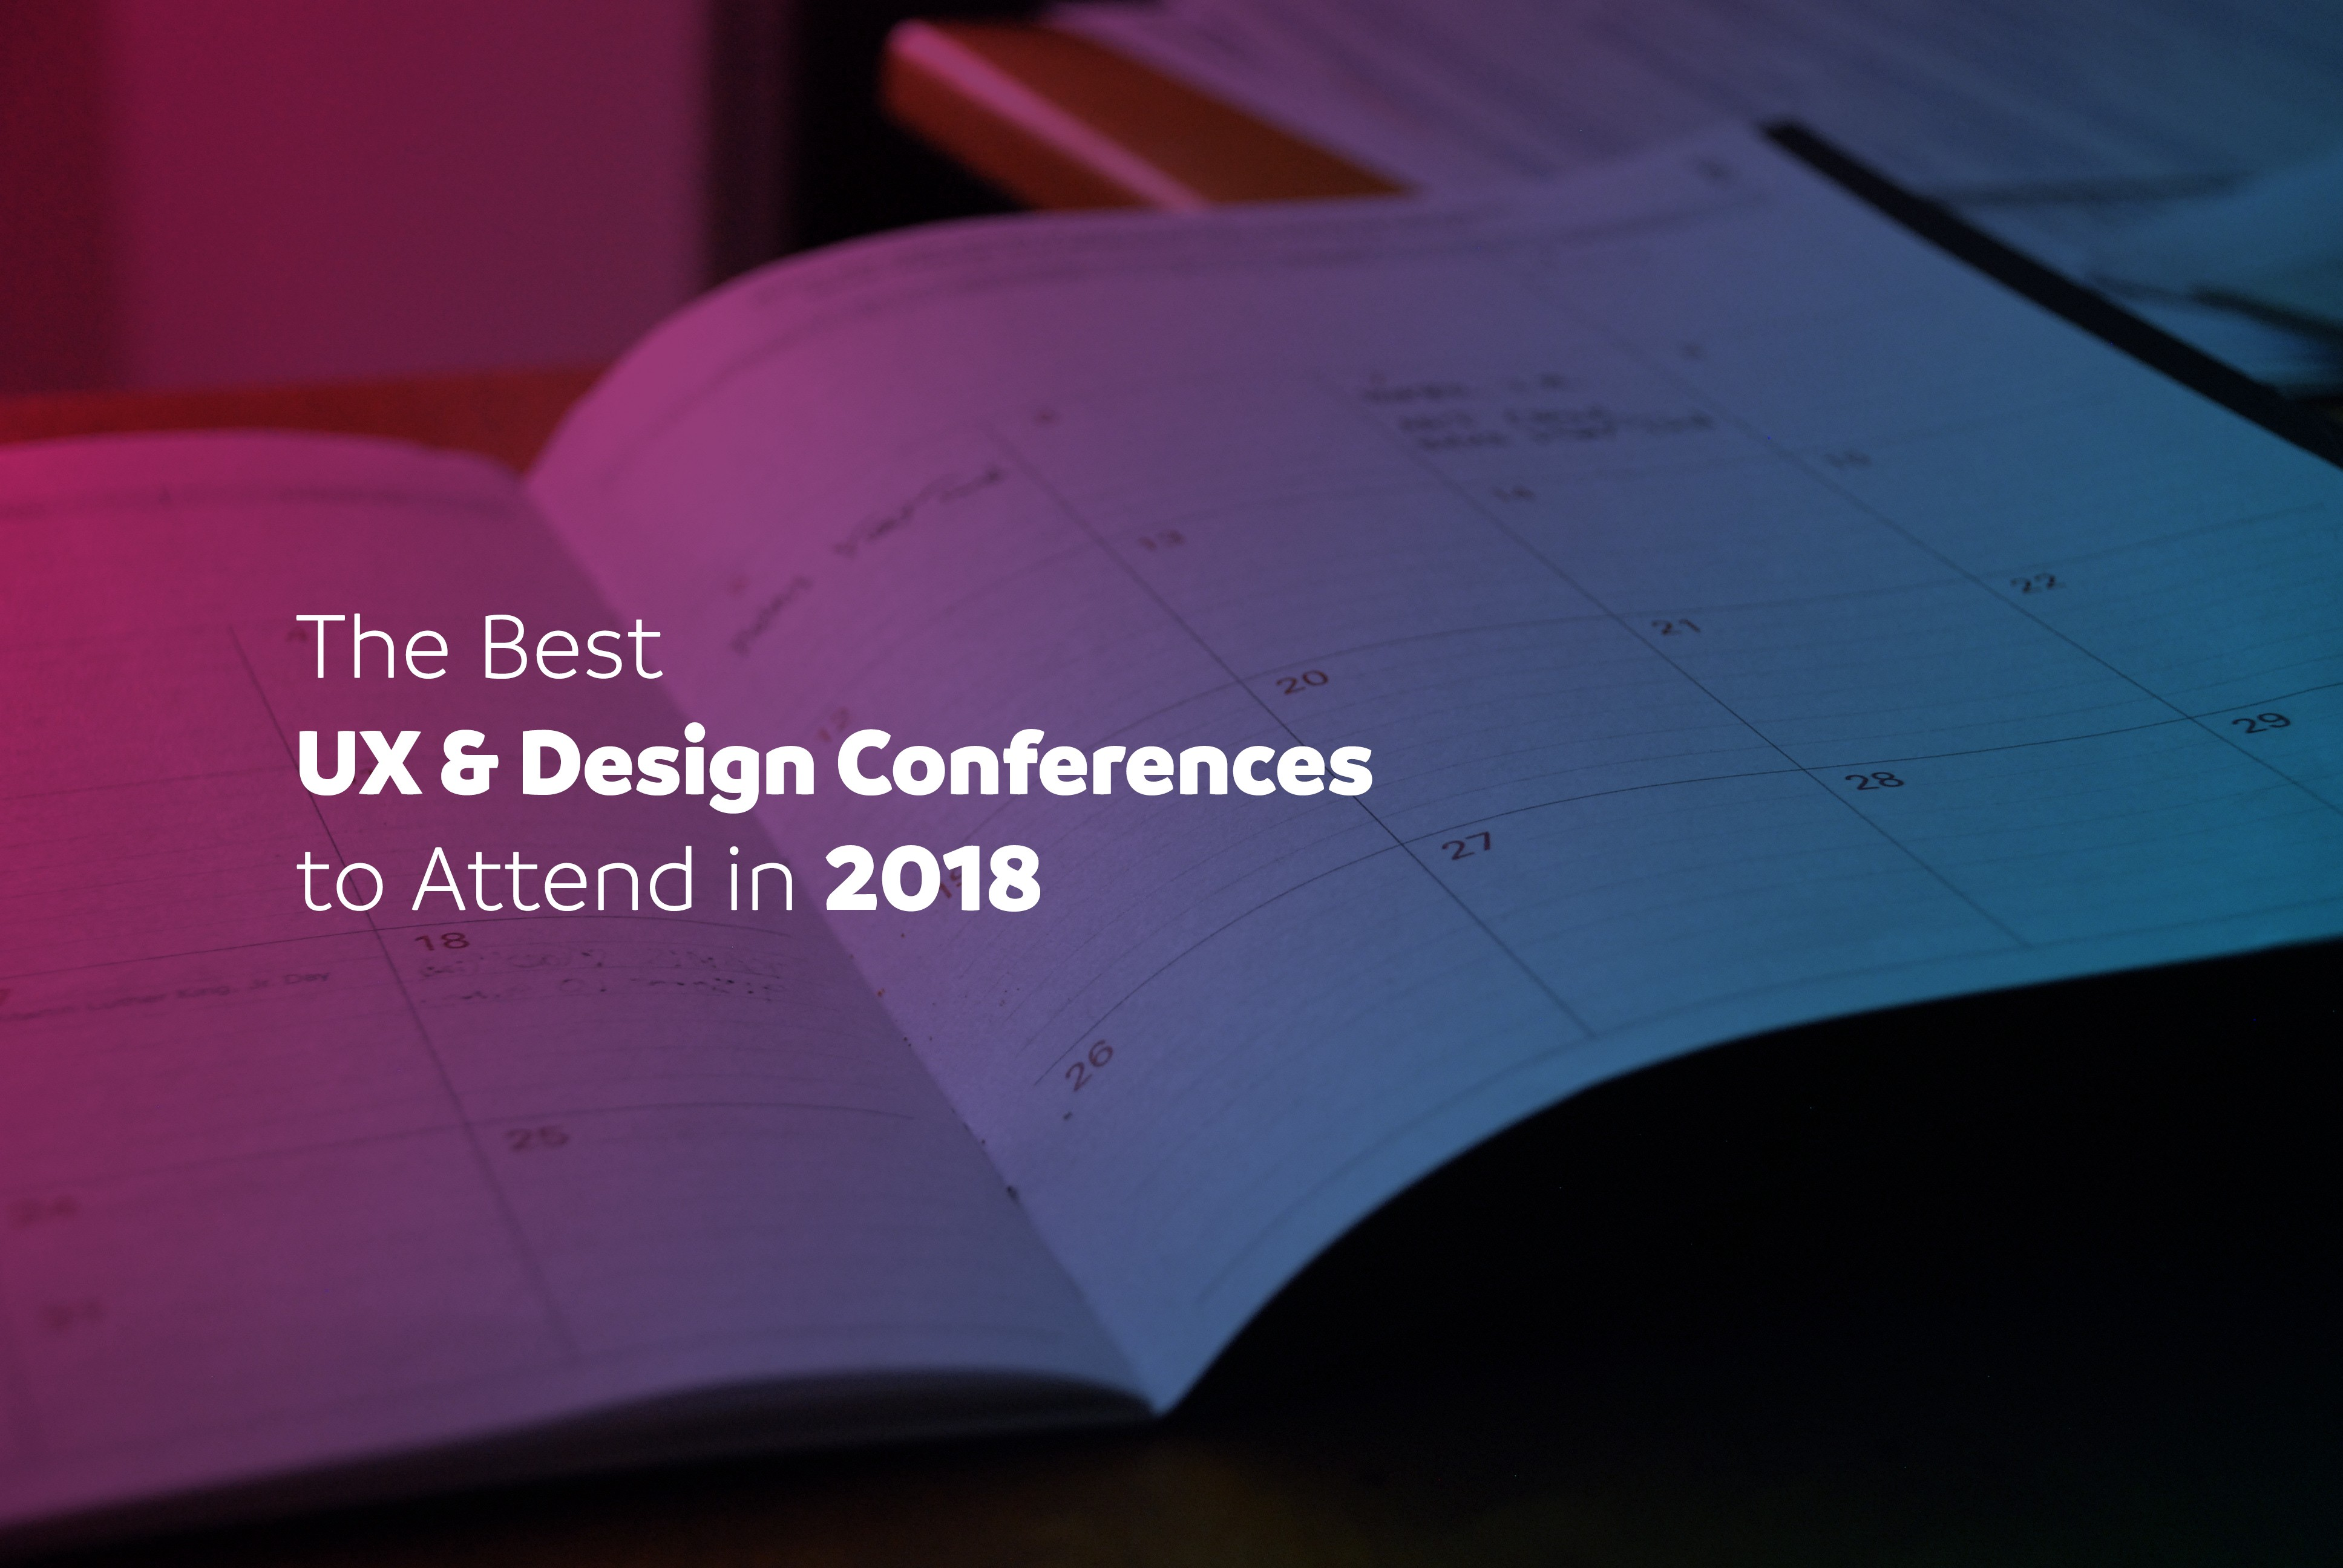 The Best UX & Design Conferences to Attend in 2018 - UX